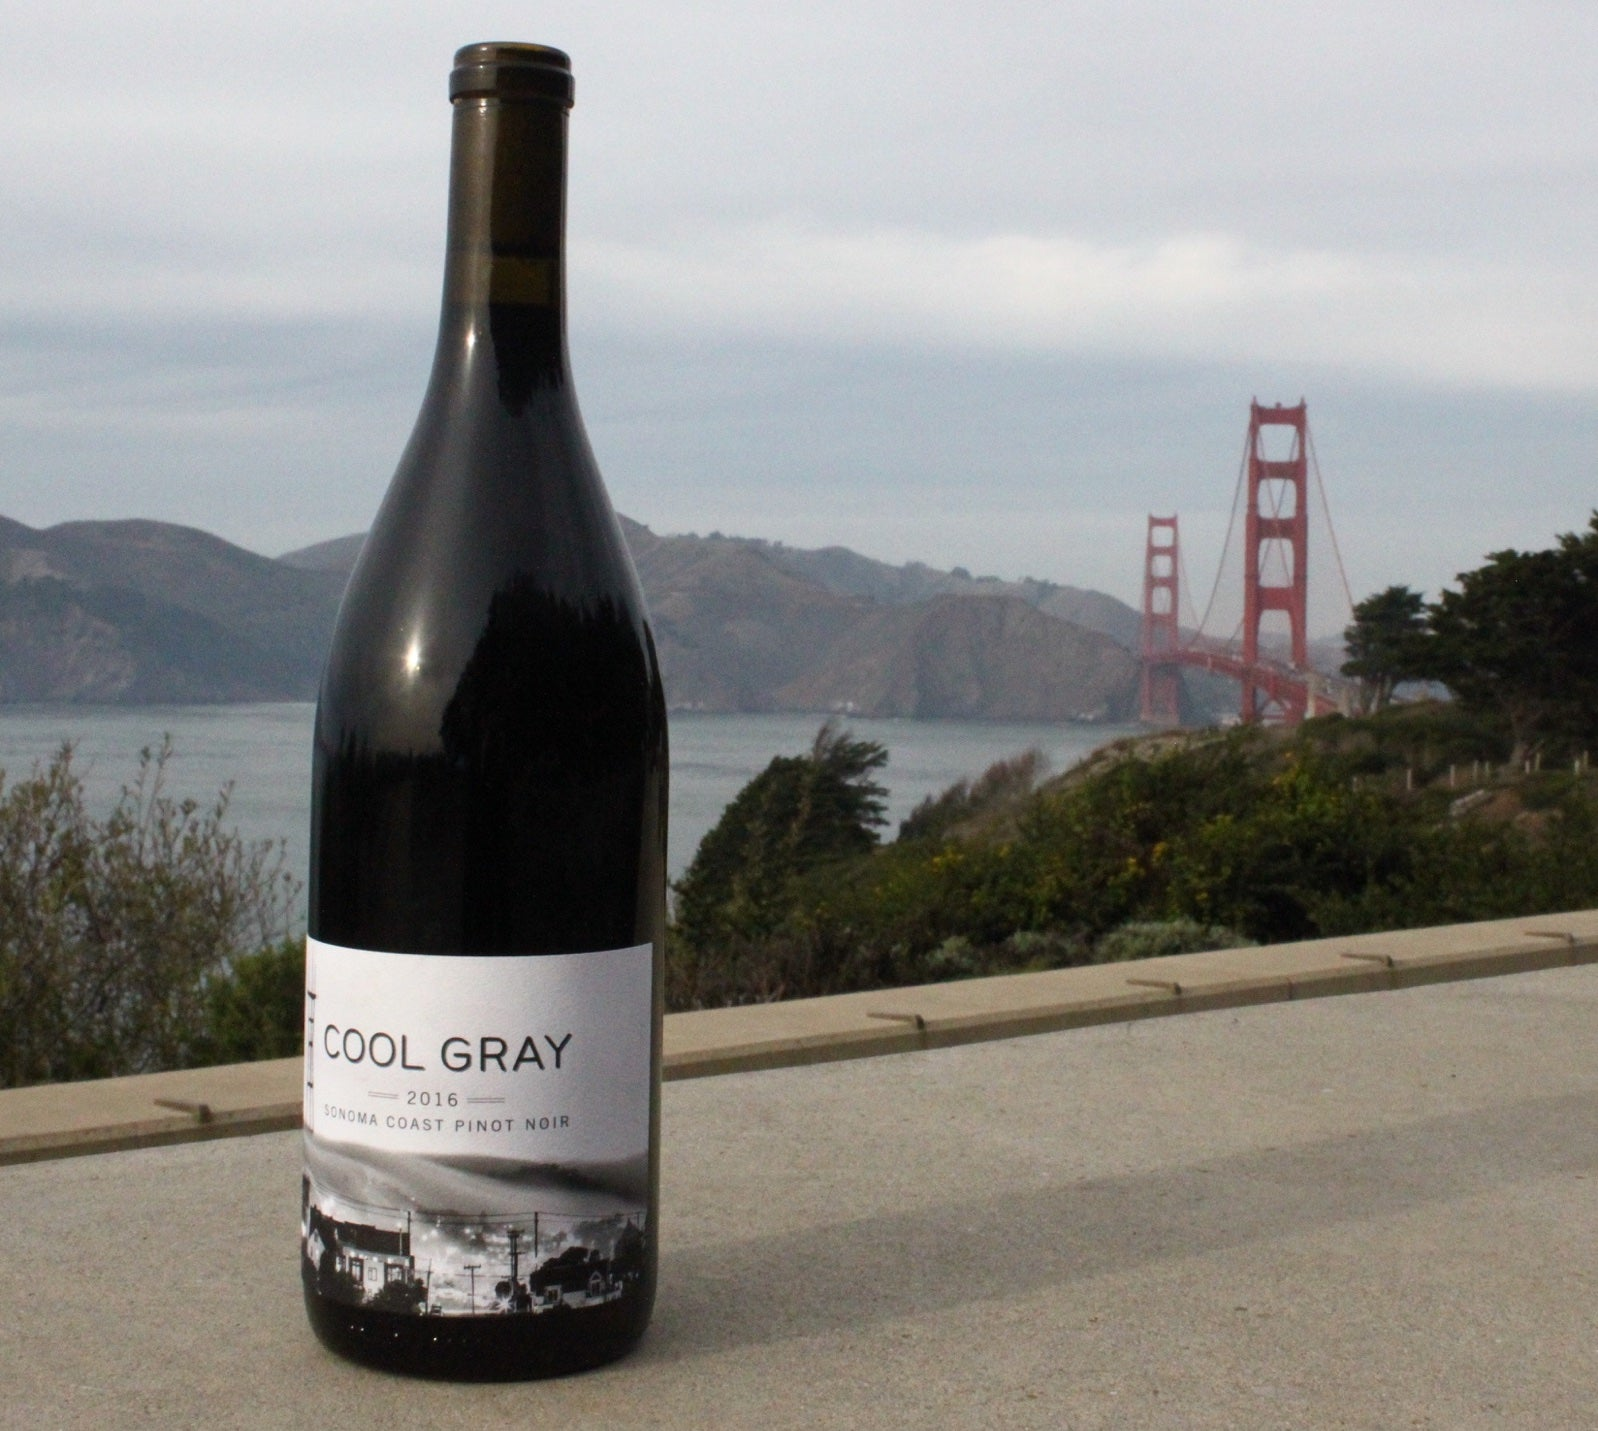 Cool Gray - 2016 Sonoma Coast Pinot Noir